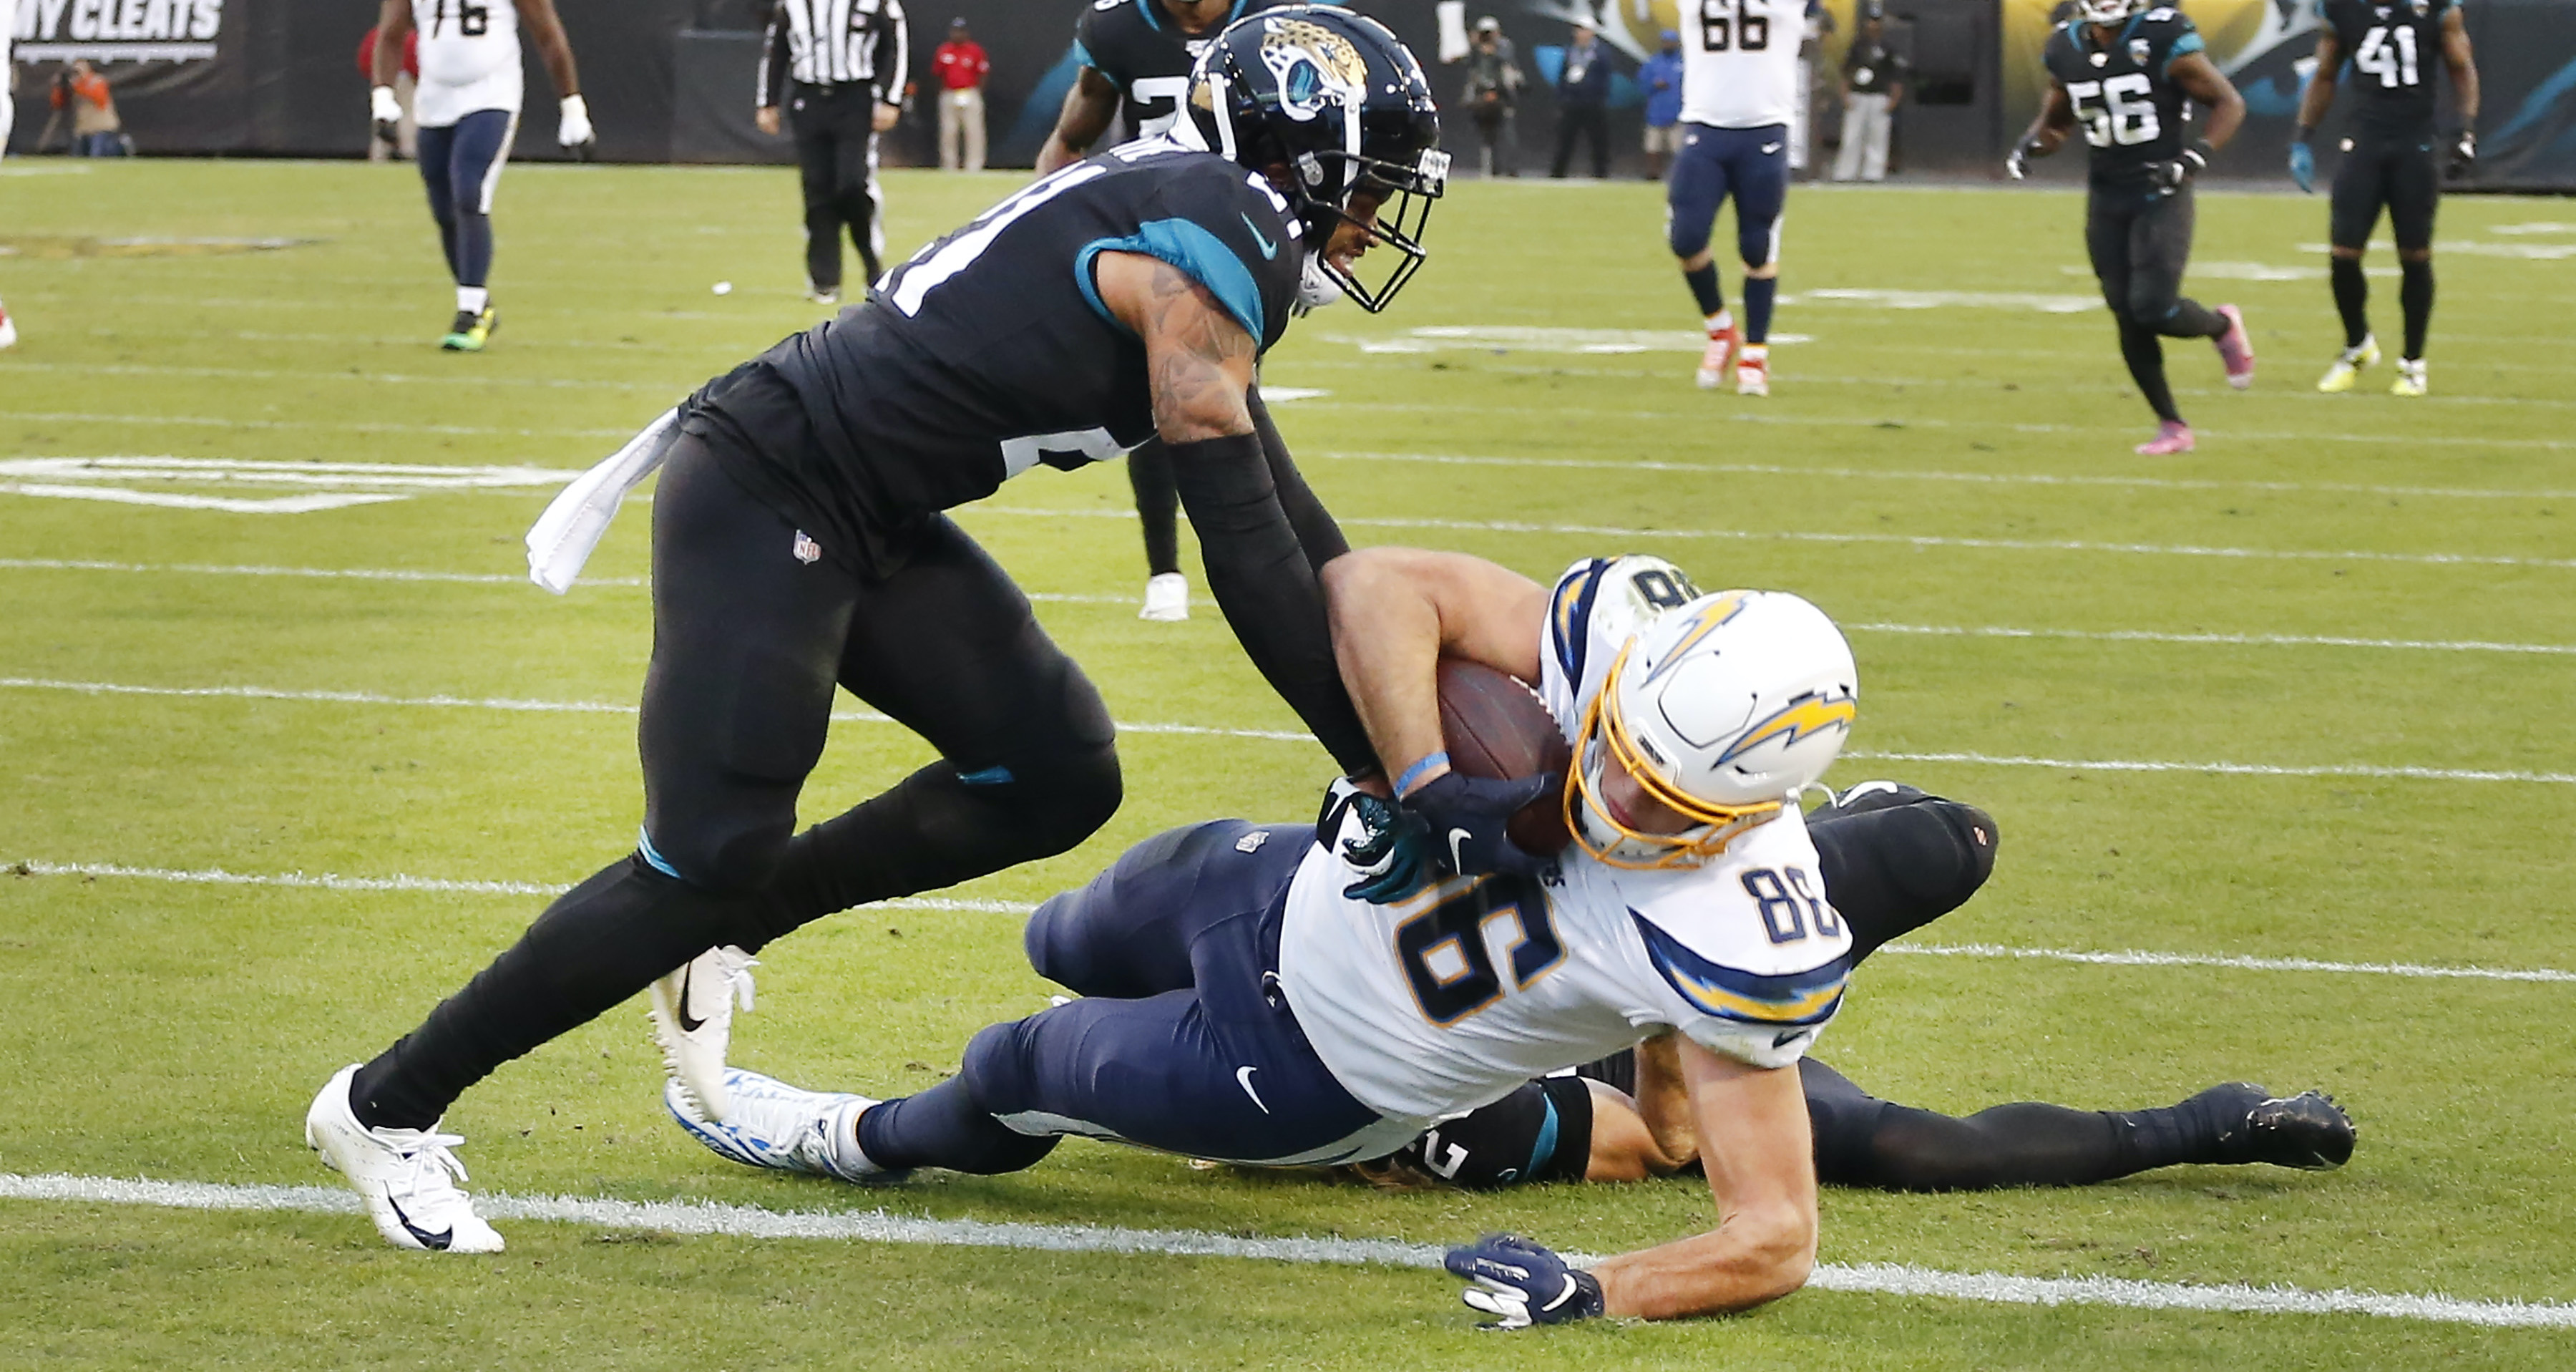 Chargers Linebacker Thomas Davis Designed a Touchdown Play for the Offense